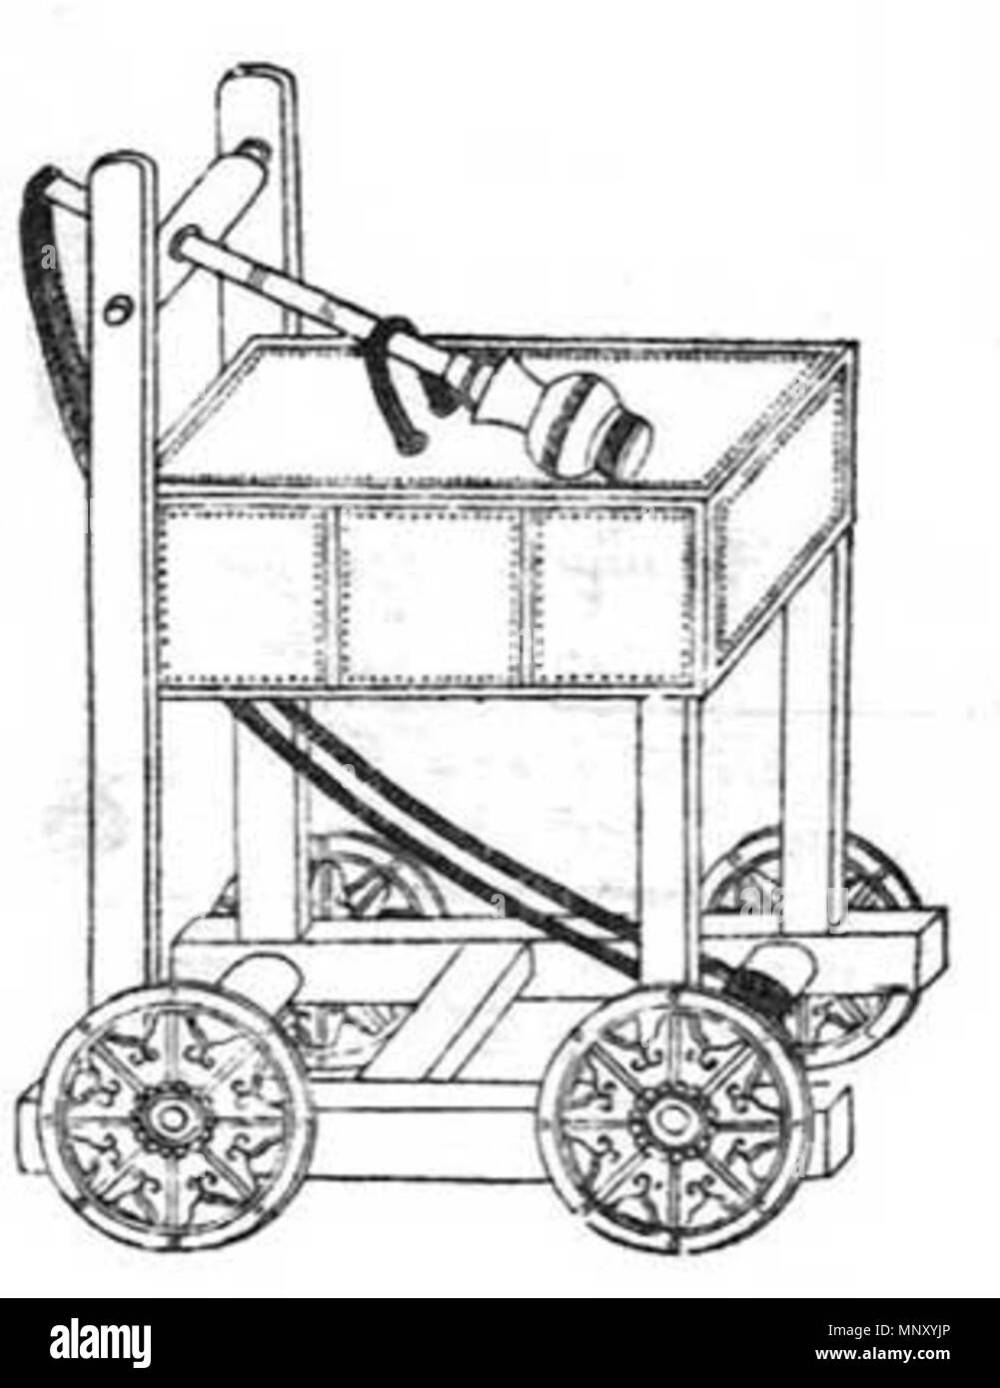 medium resolution of english illustration of a hinged counterweight trebuchet prepped for transit from the wujing zongyao